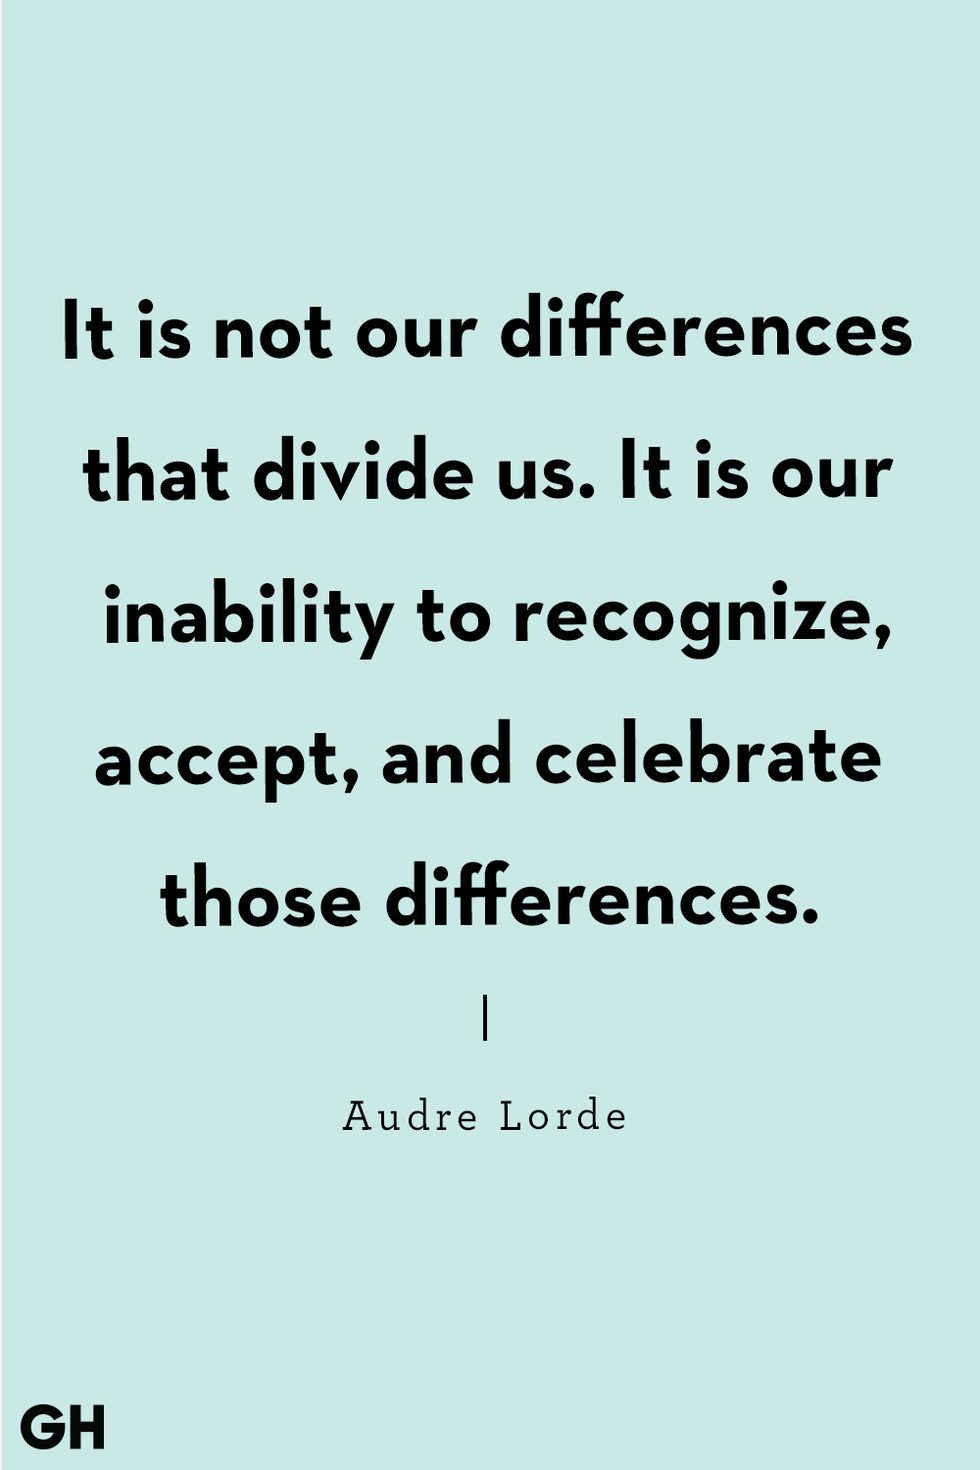 30 Insightful Quotes on Racism and the Power of Diversity in Society